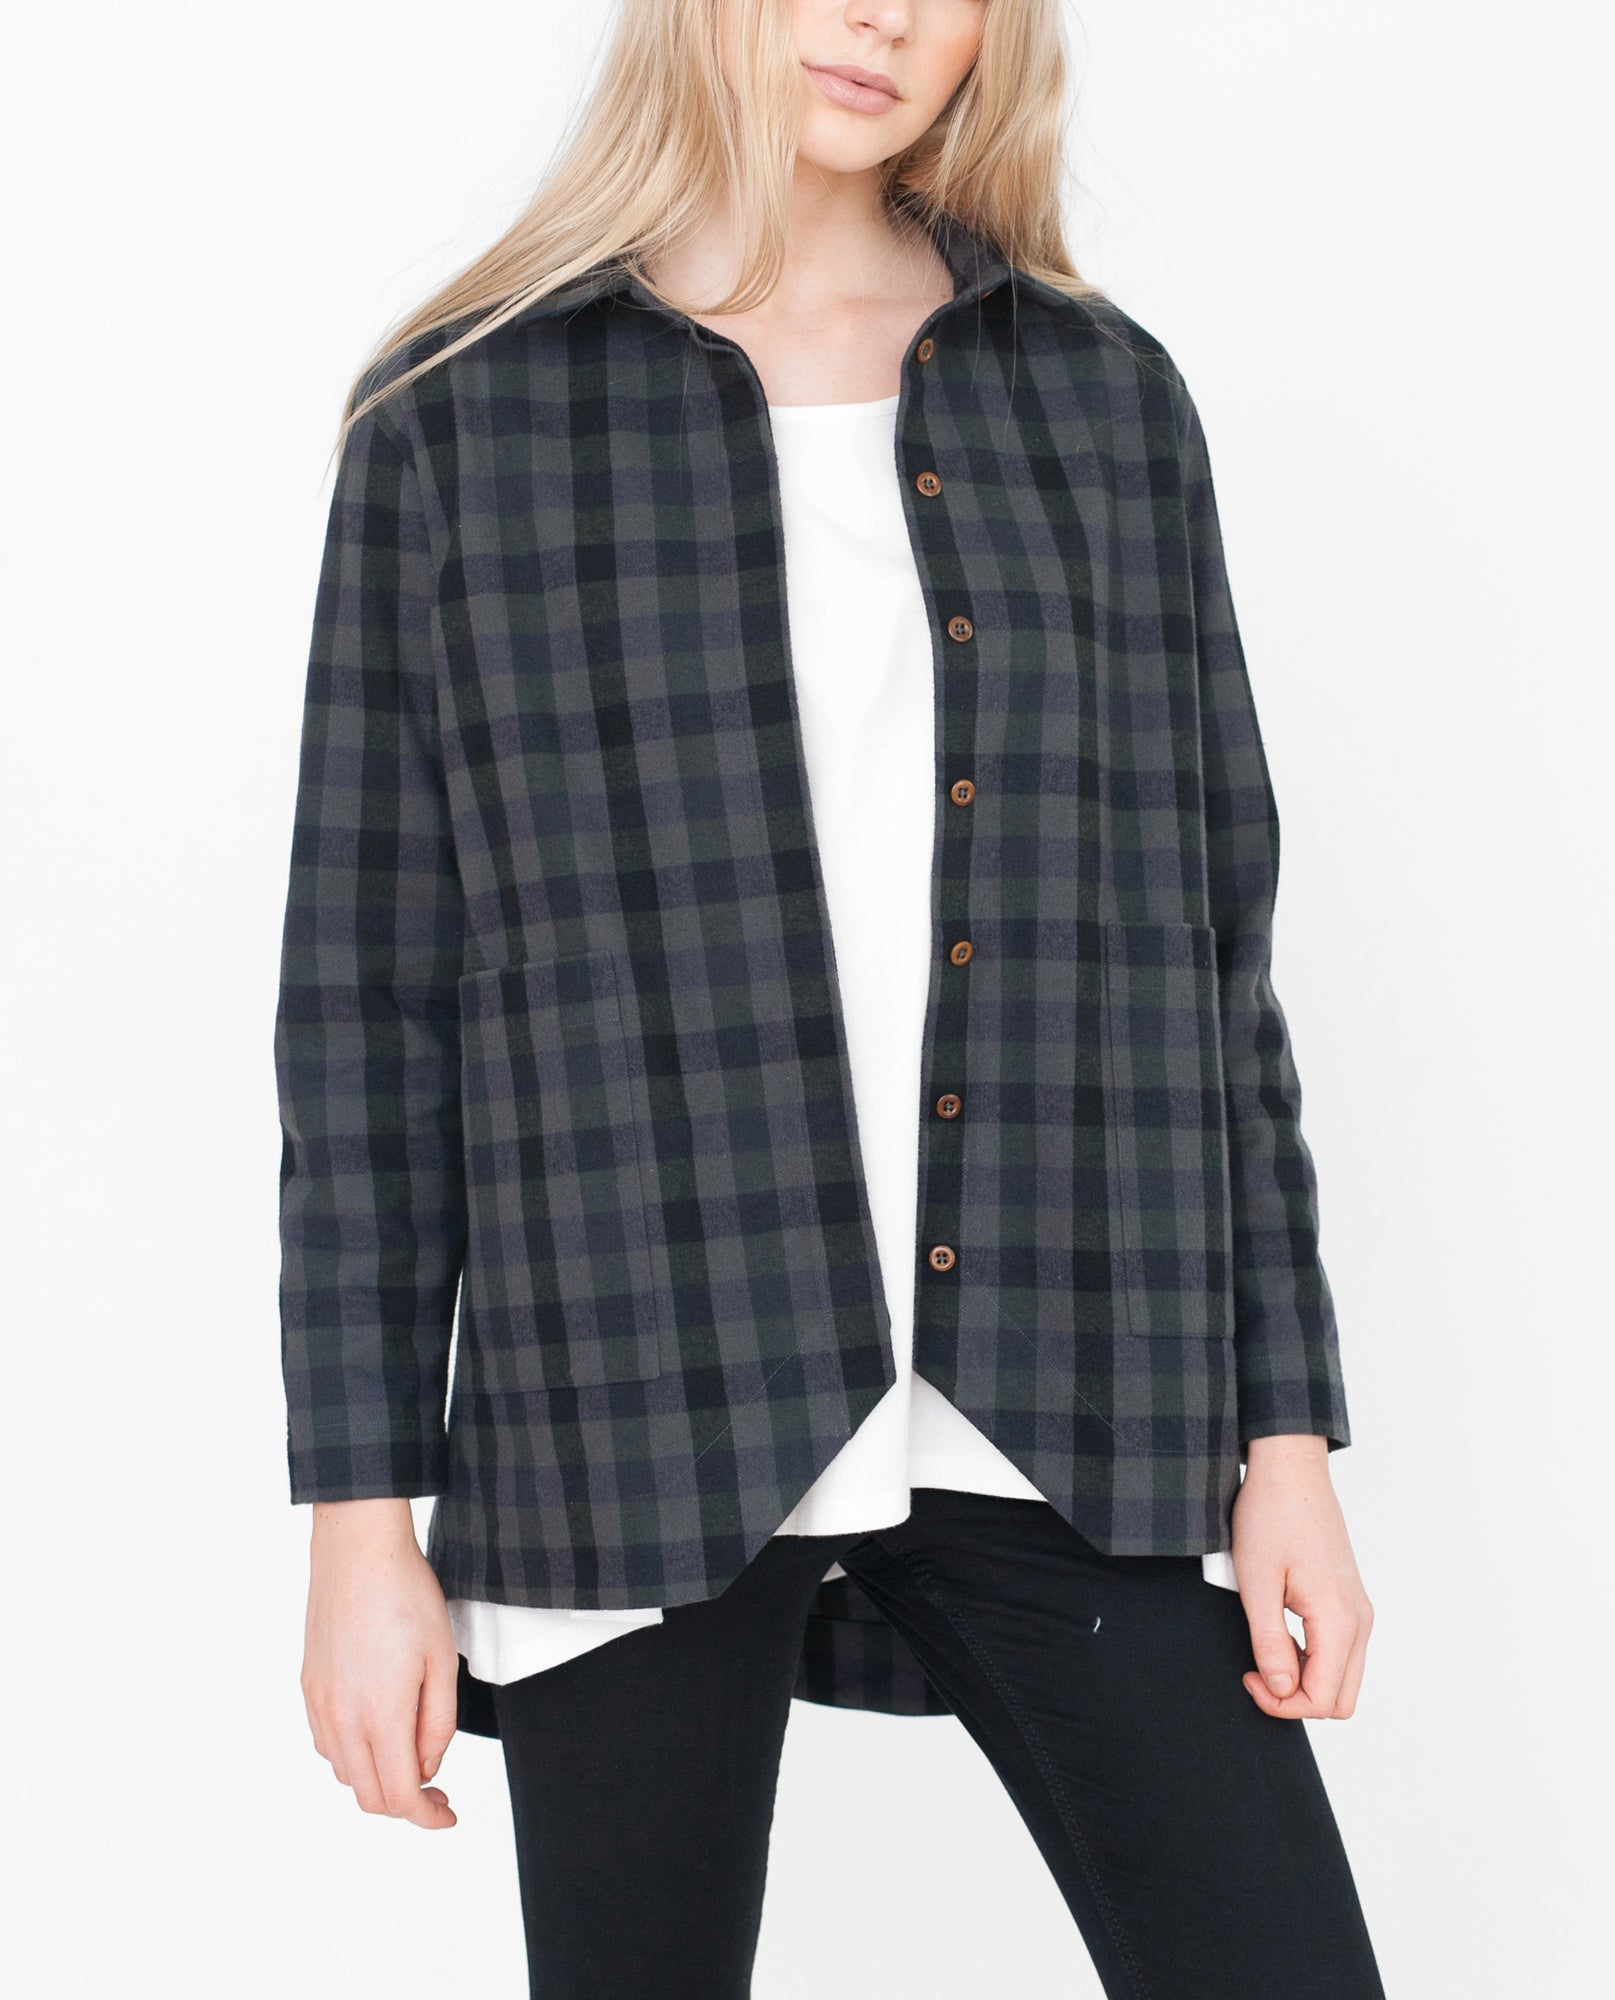 FRAN Checked Cotton Jacket In Khaki And Black from Beaumont Organic